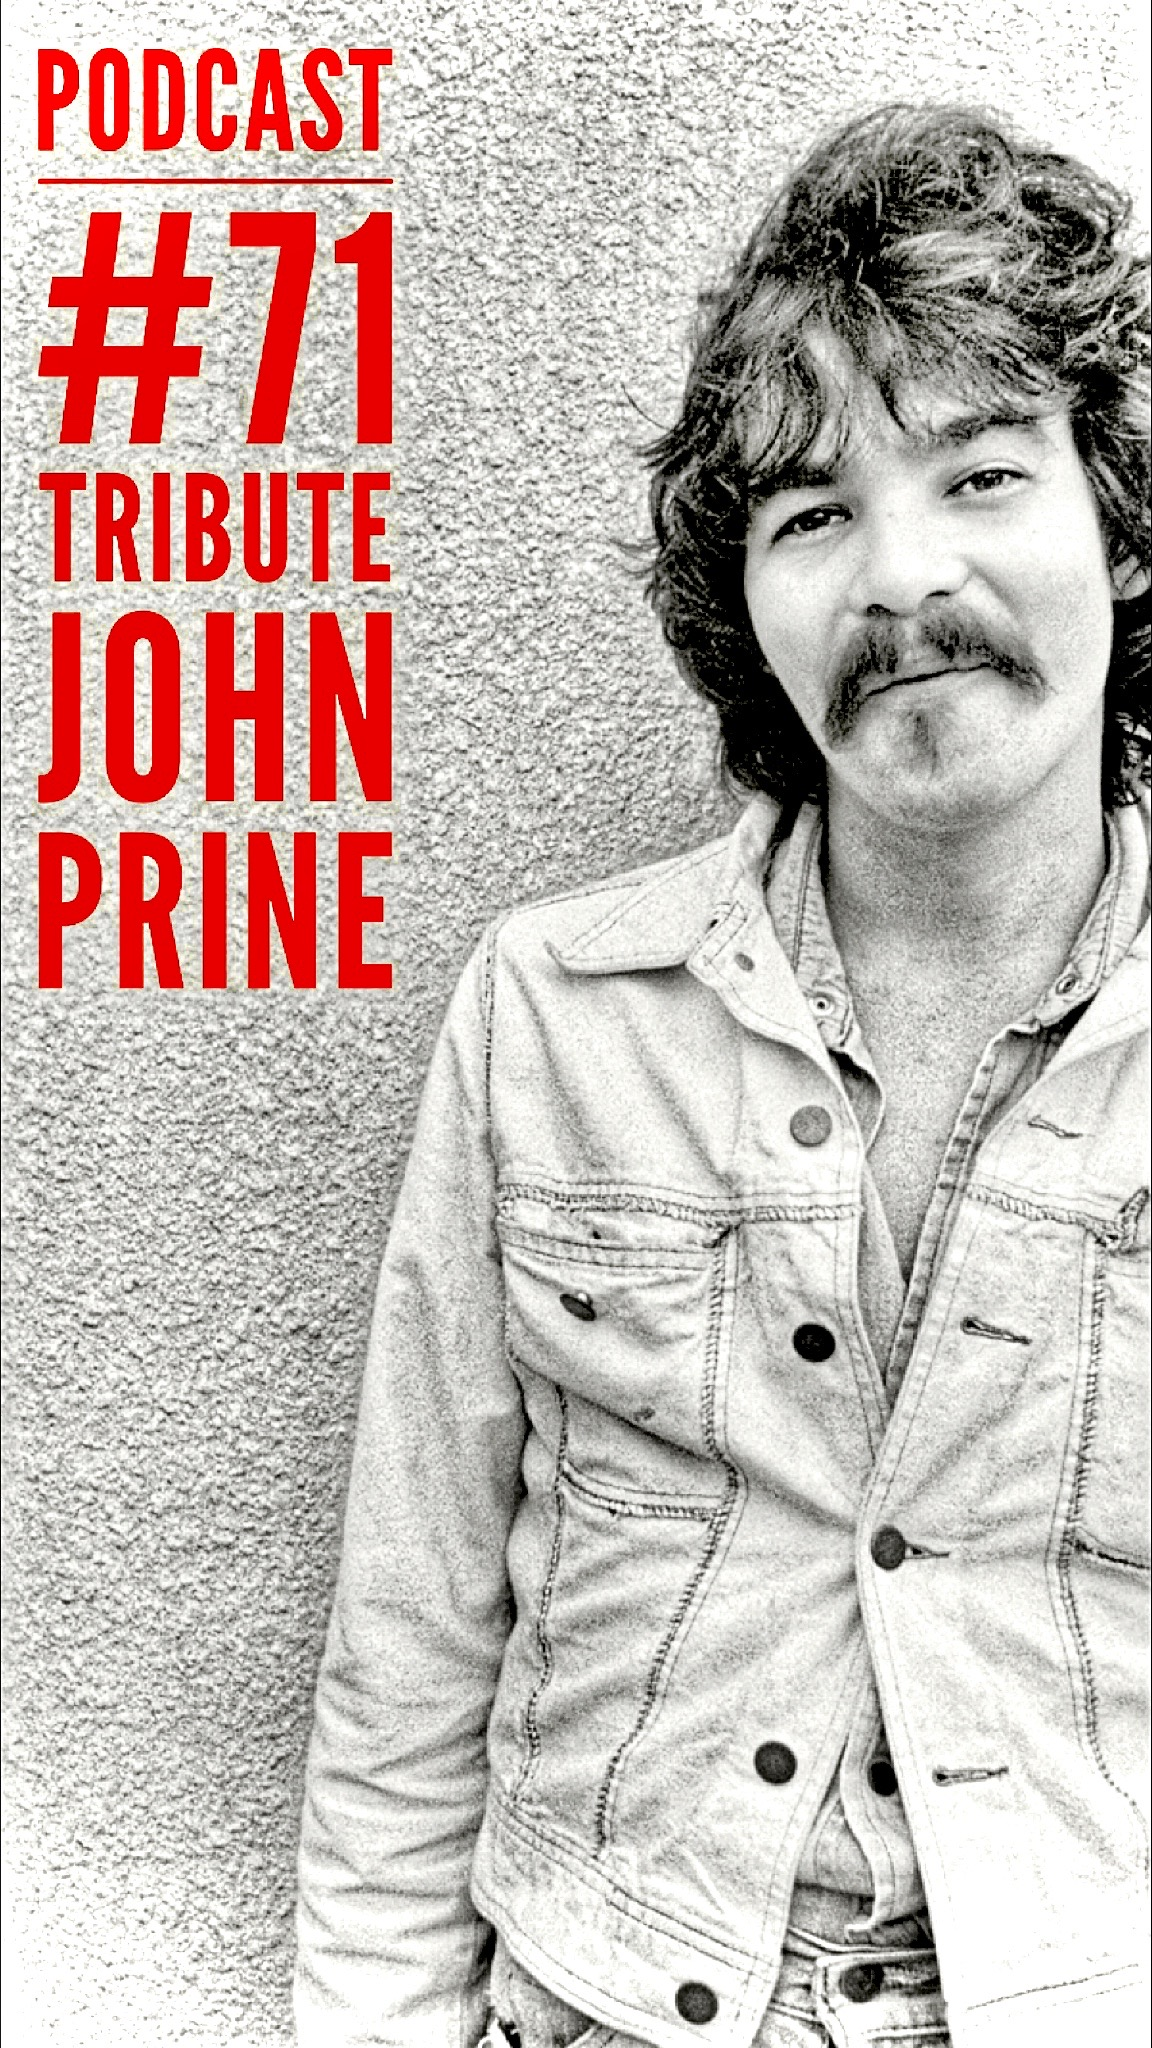 71 Tribute to John Prine